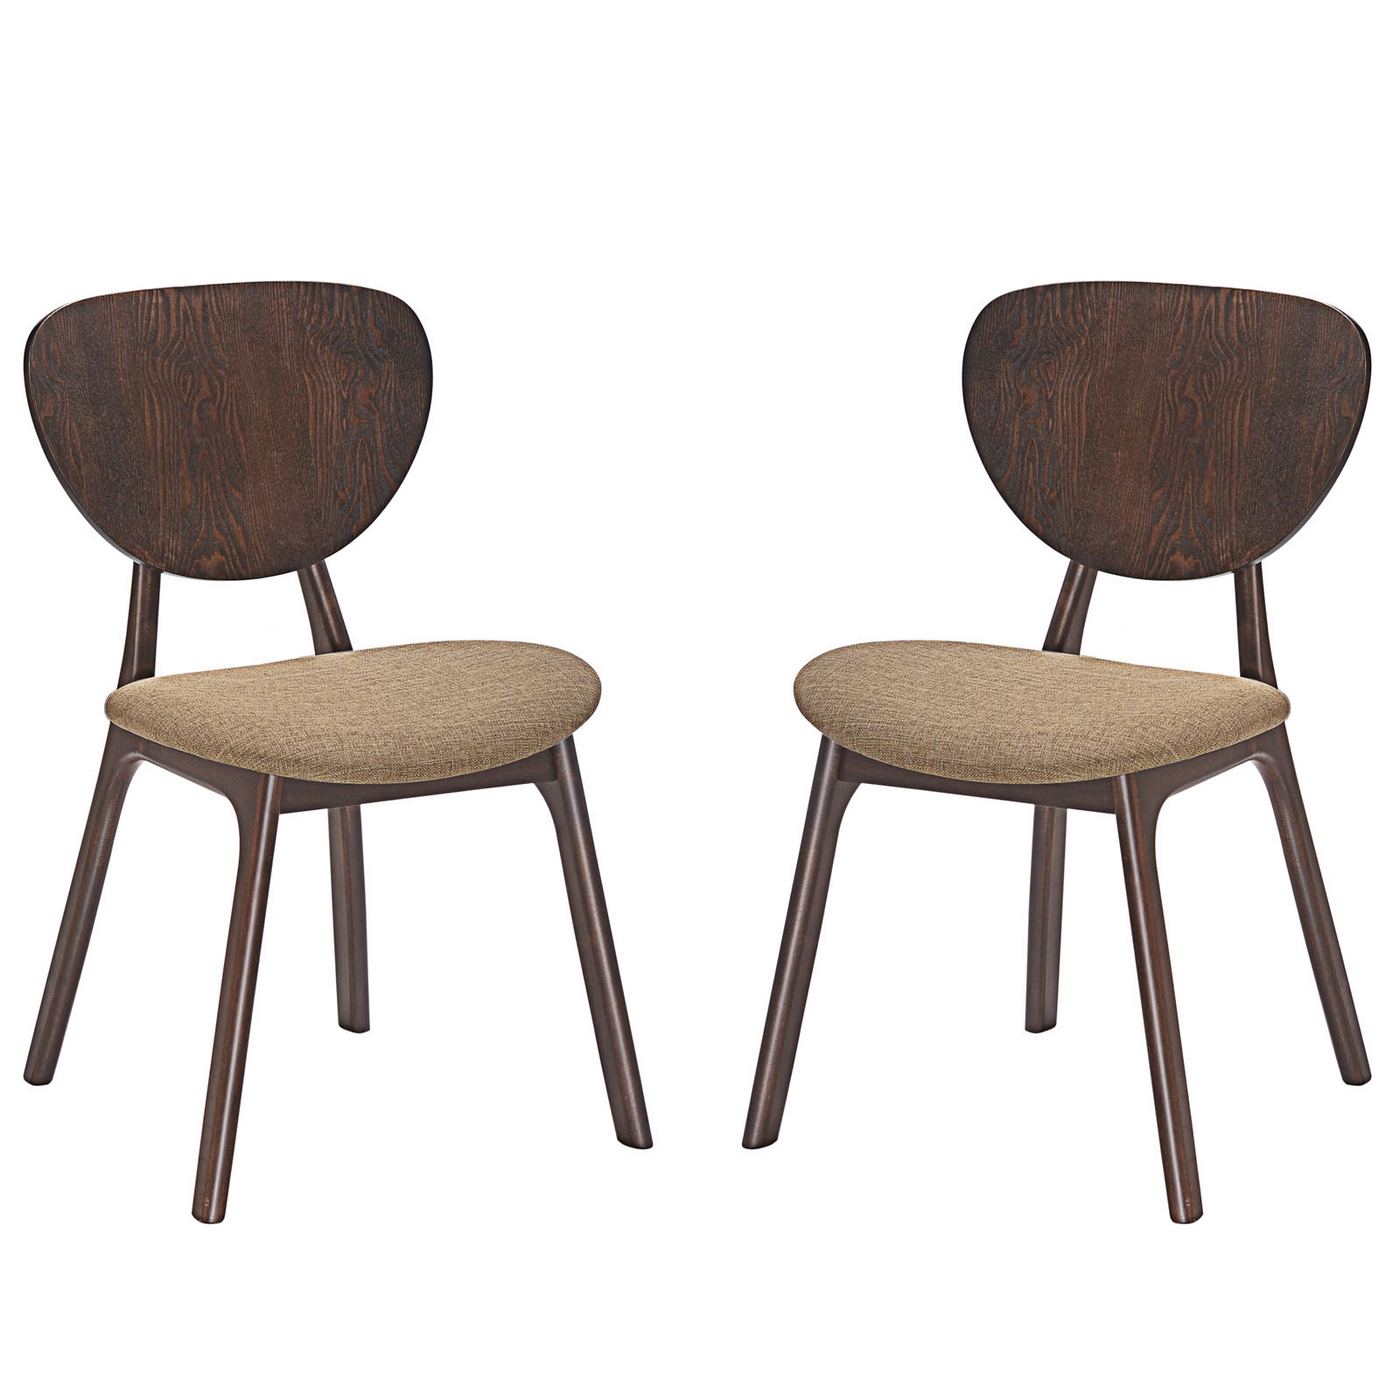 Set of 2 murmur vintage modern wooden dining side chairs for Walnut dining chairs modern